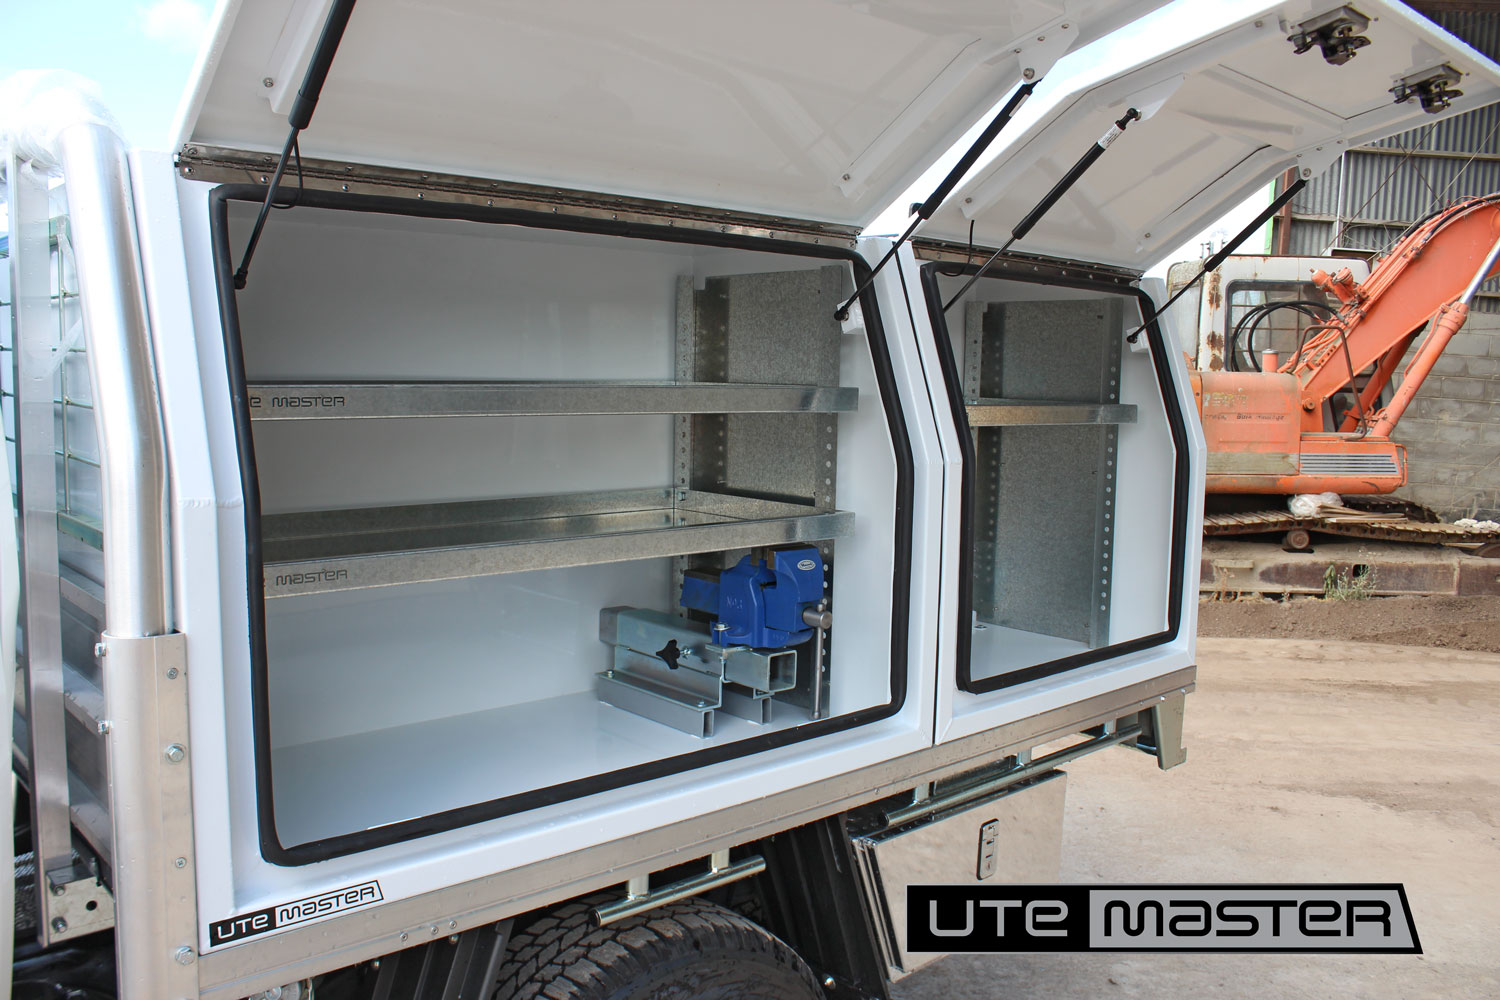 Utemaster Toolbox Shelving Dividers Ute Toolboxes